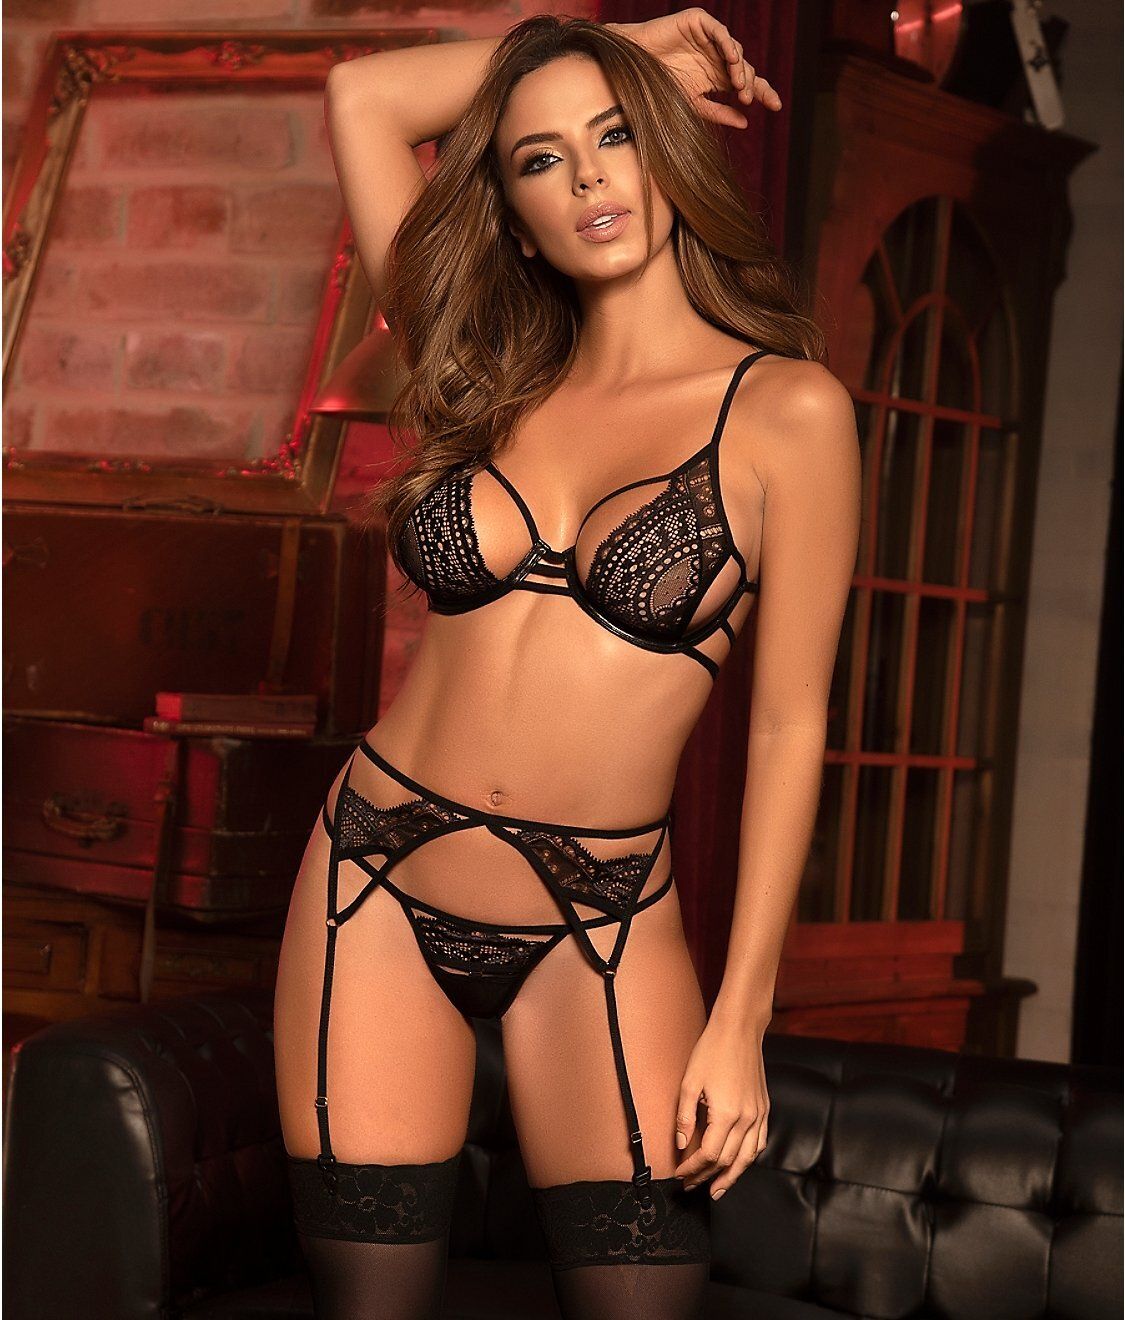 gorgeous lingerie girl